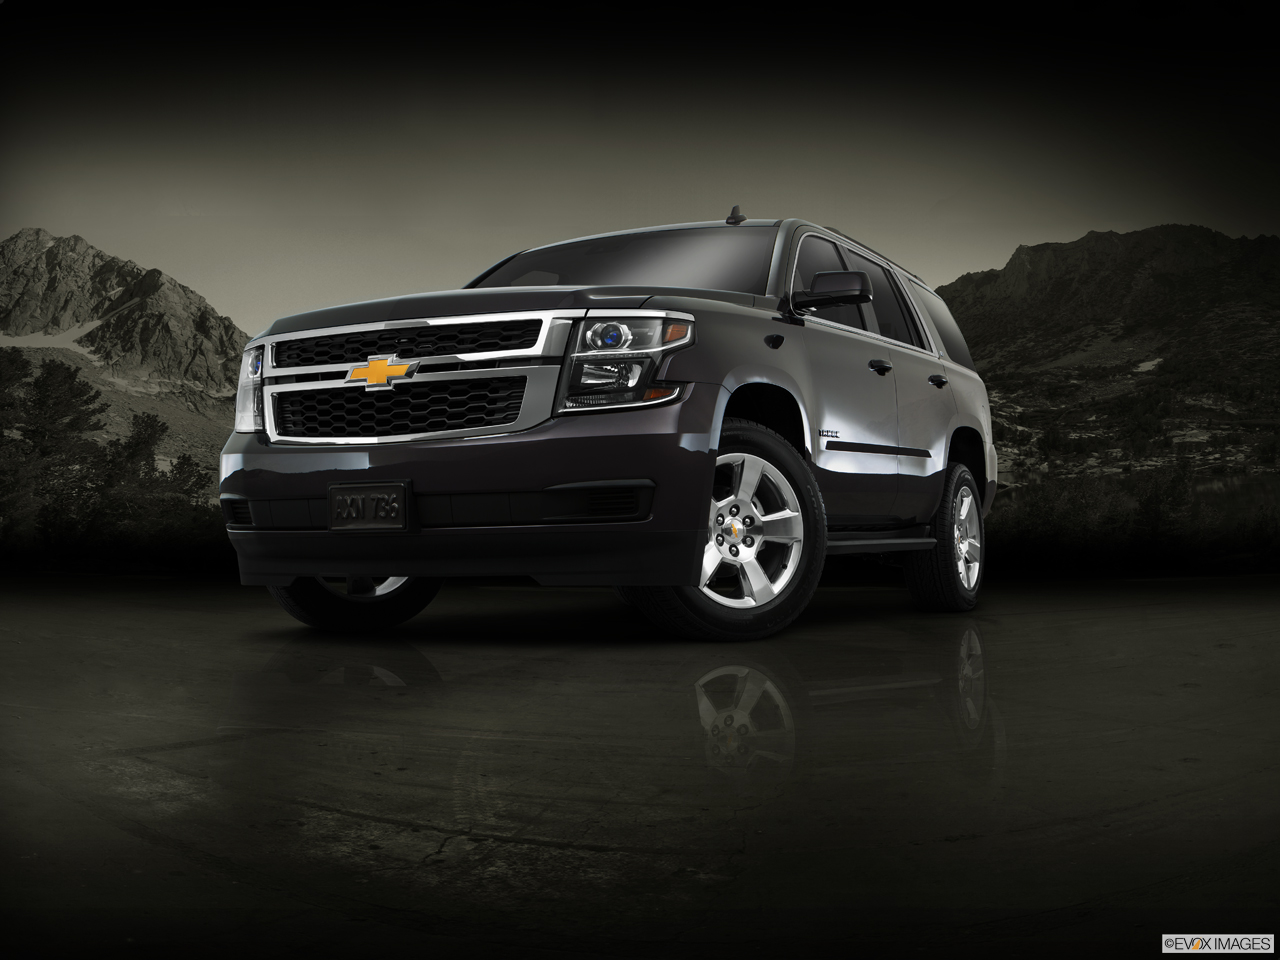 2016 Chevrolet Tahoe In Reno Champion 2015 Chevy Chrome Roof Rack Exterior View Of